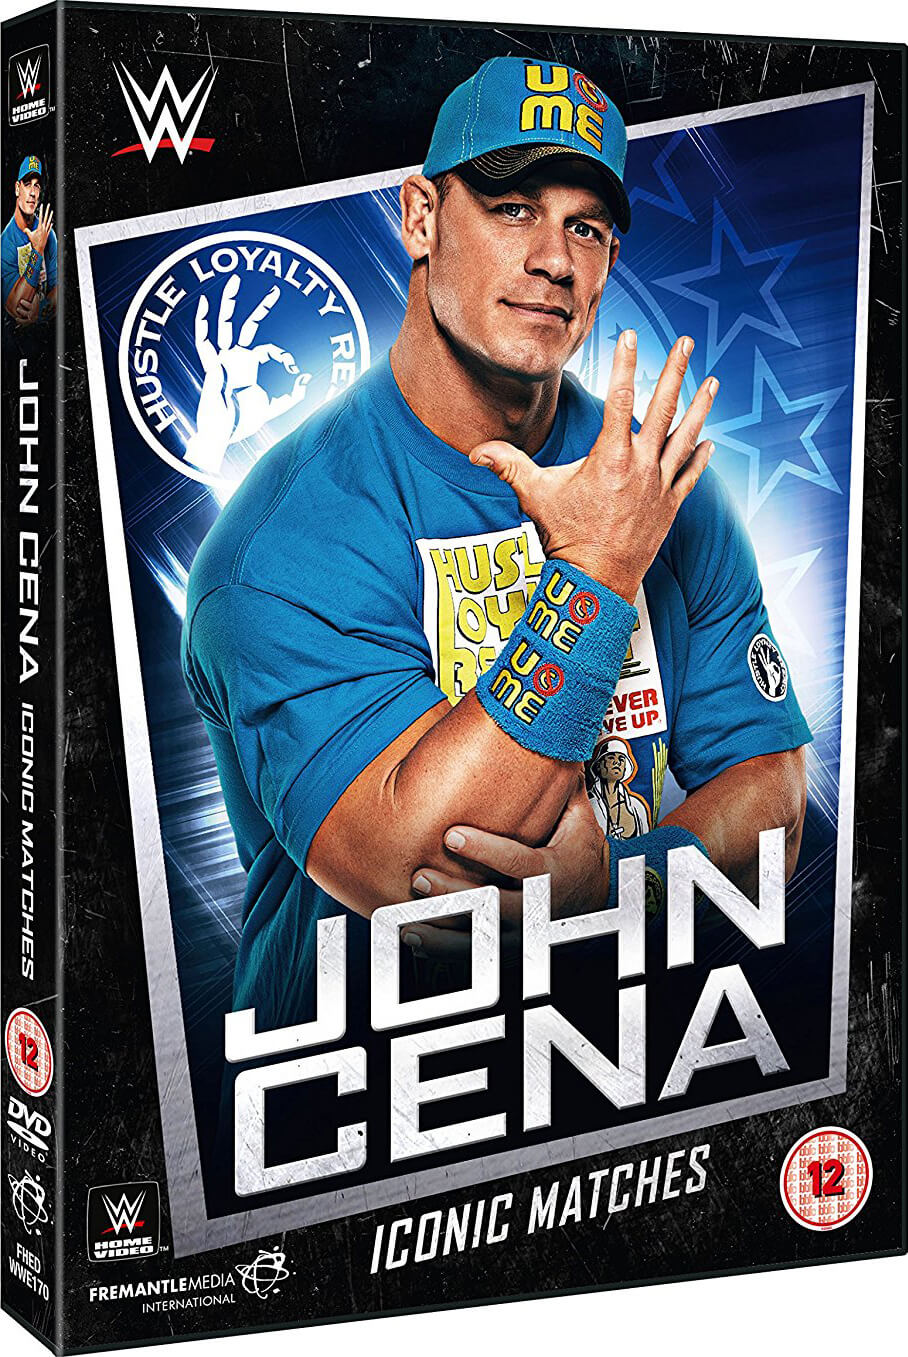 WWE: John Cena - Iconic Matches